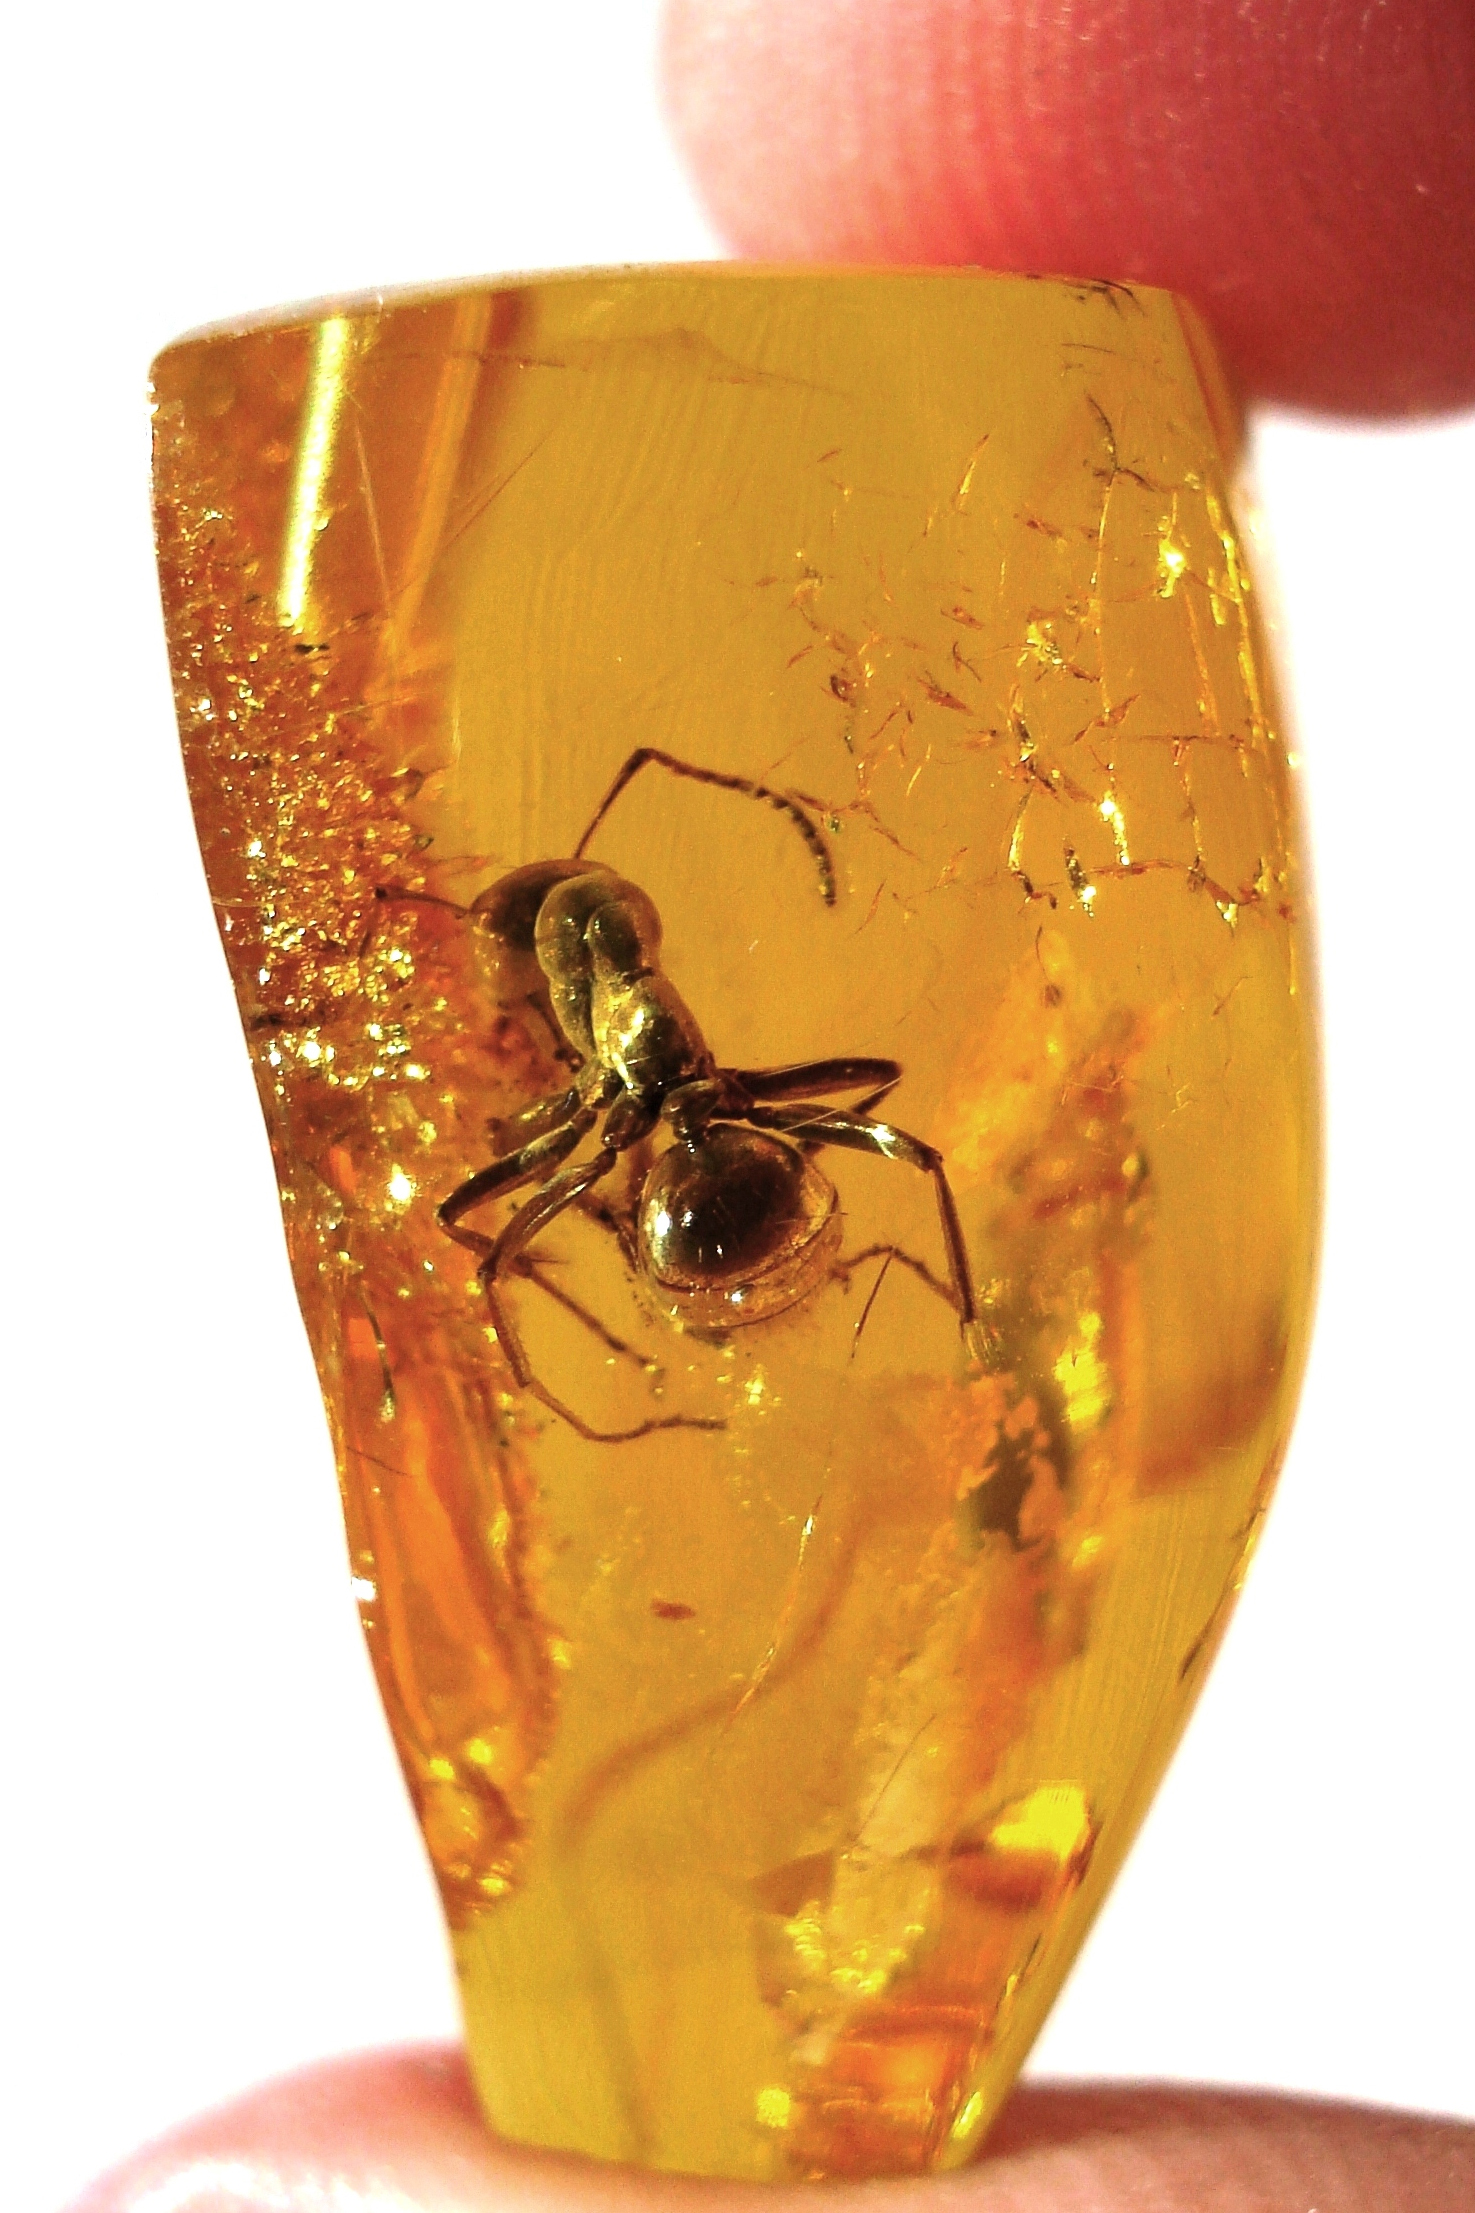 Insect embedded in amber